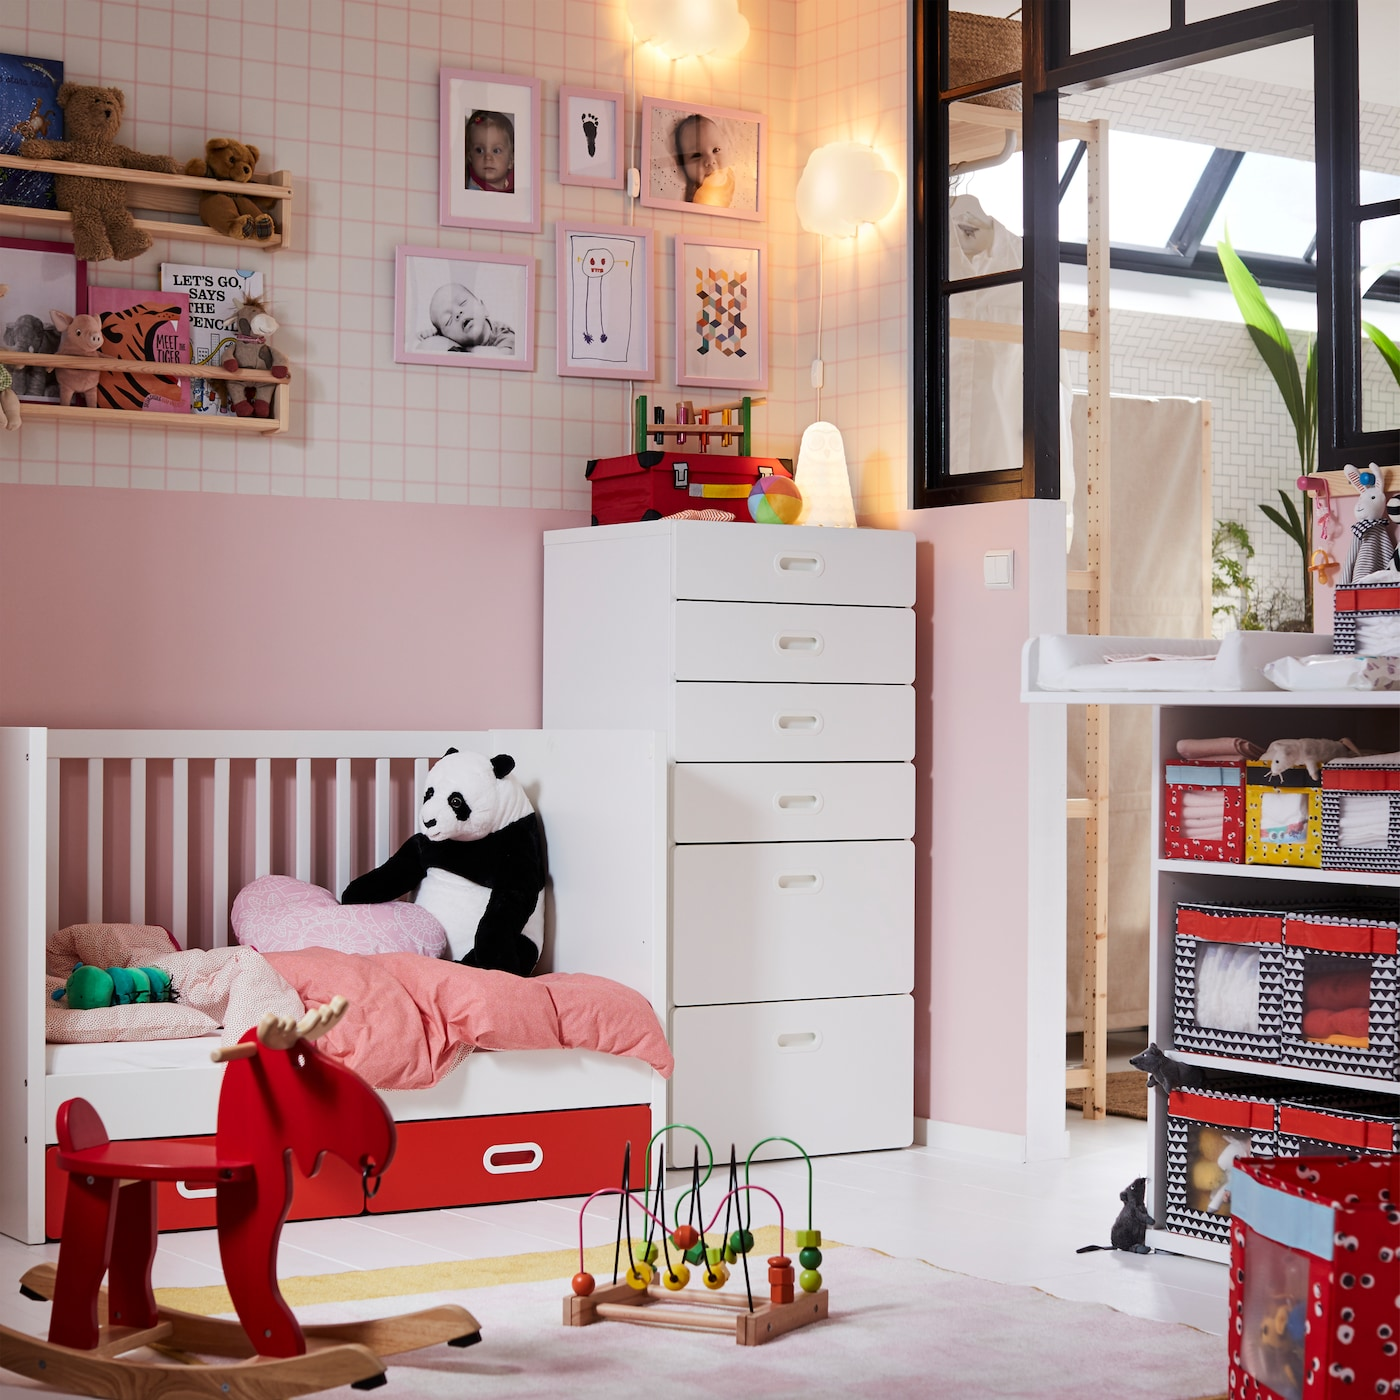 IKEA STUVA white baby furniture crib and six drawer unit in a pink children's nursery room with toys and stuffed panda bear.